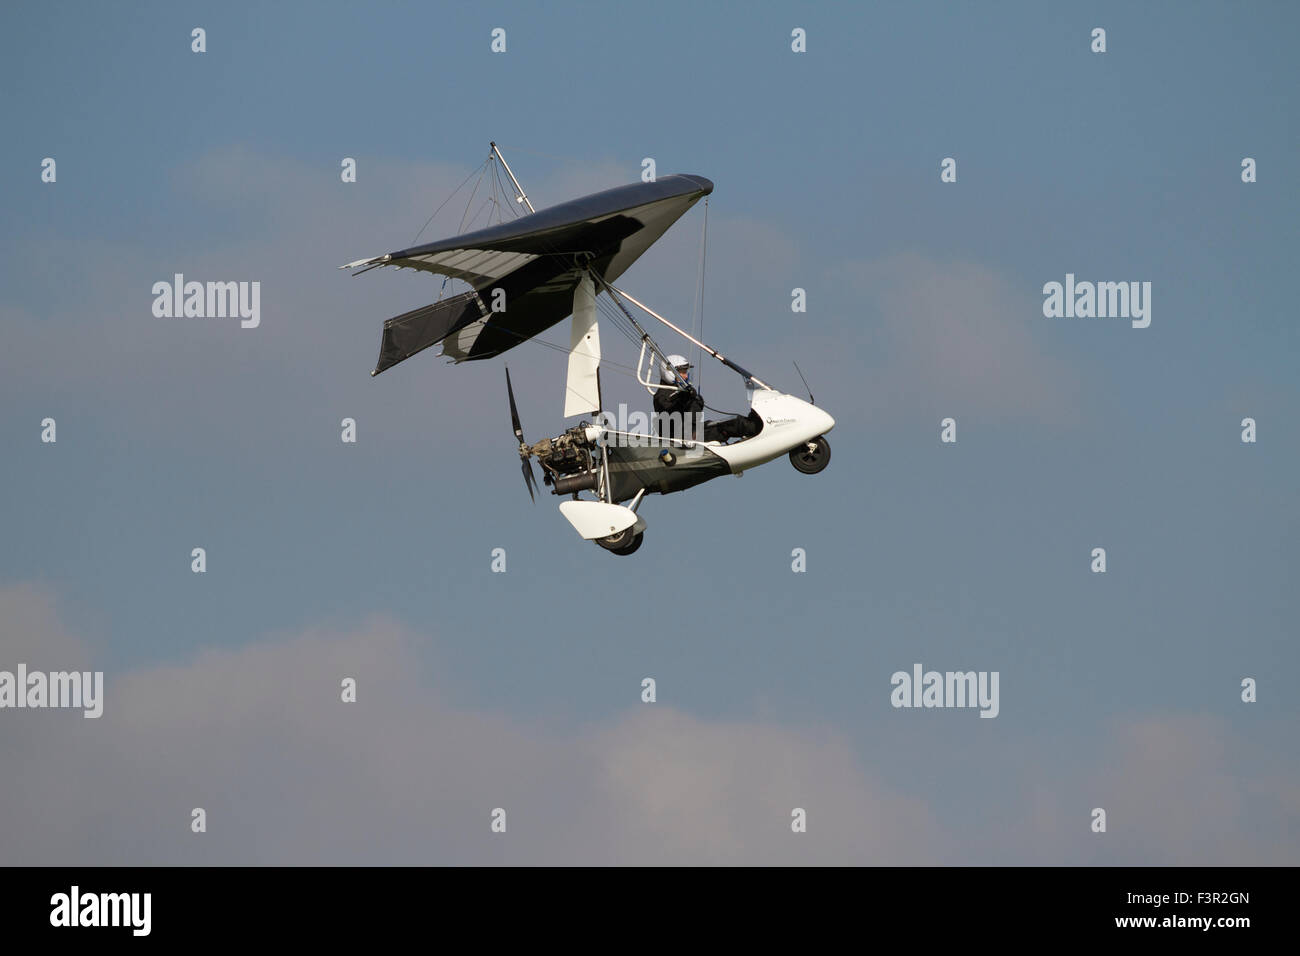 Microlight Aircraft Stock Photos & Microlight Aircraft Stock